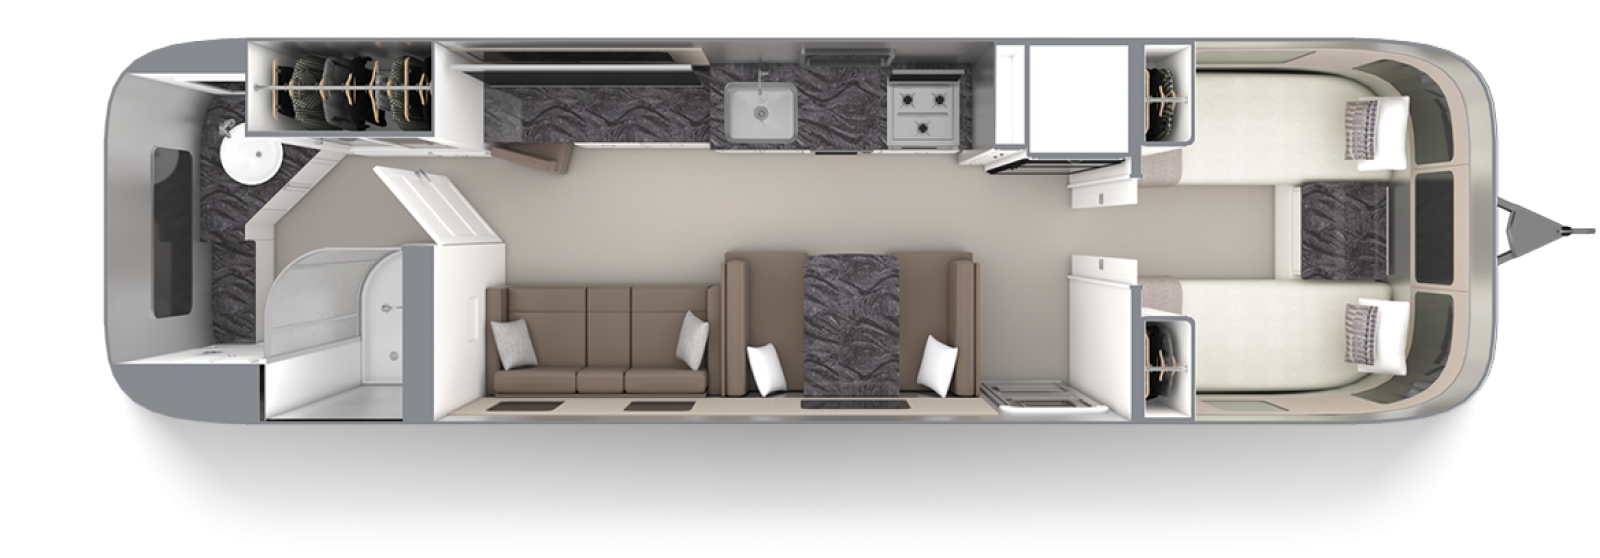 Airstream-Classic-33FB-Twin-Comfort-White-Cafe-Latte-Floor-Plan